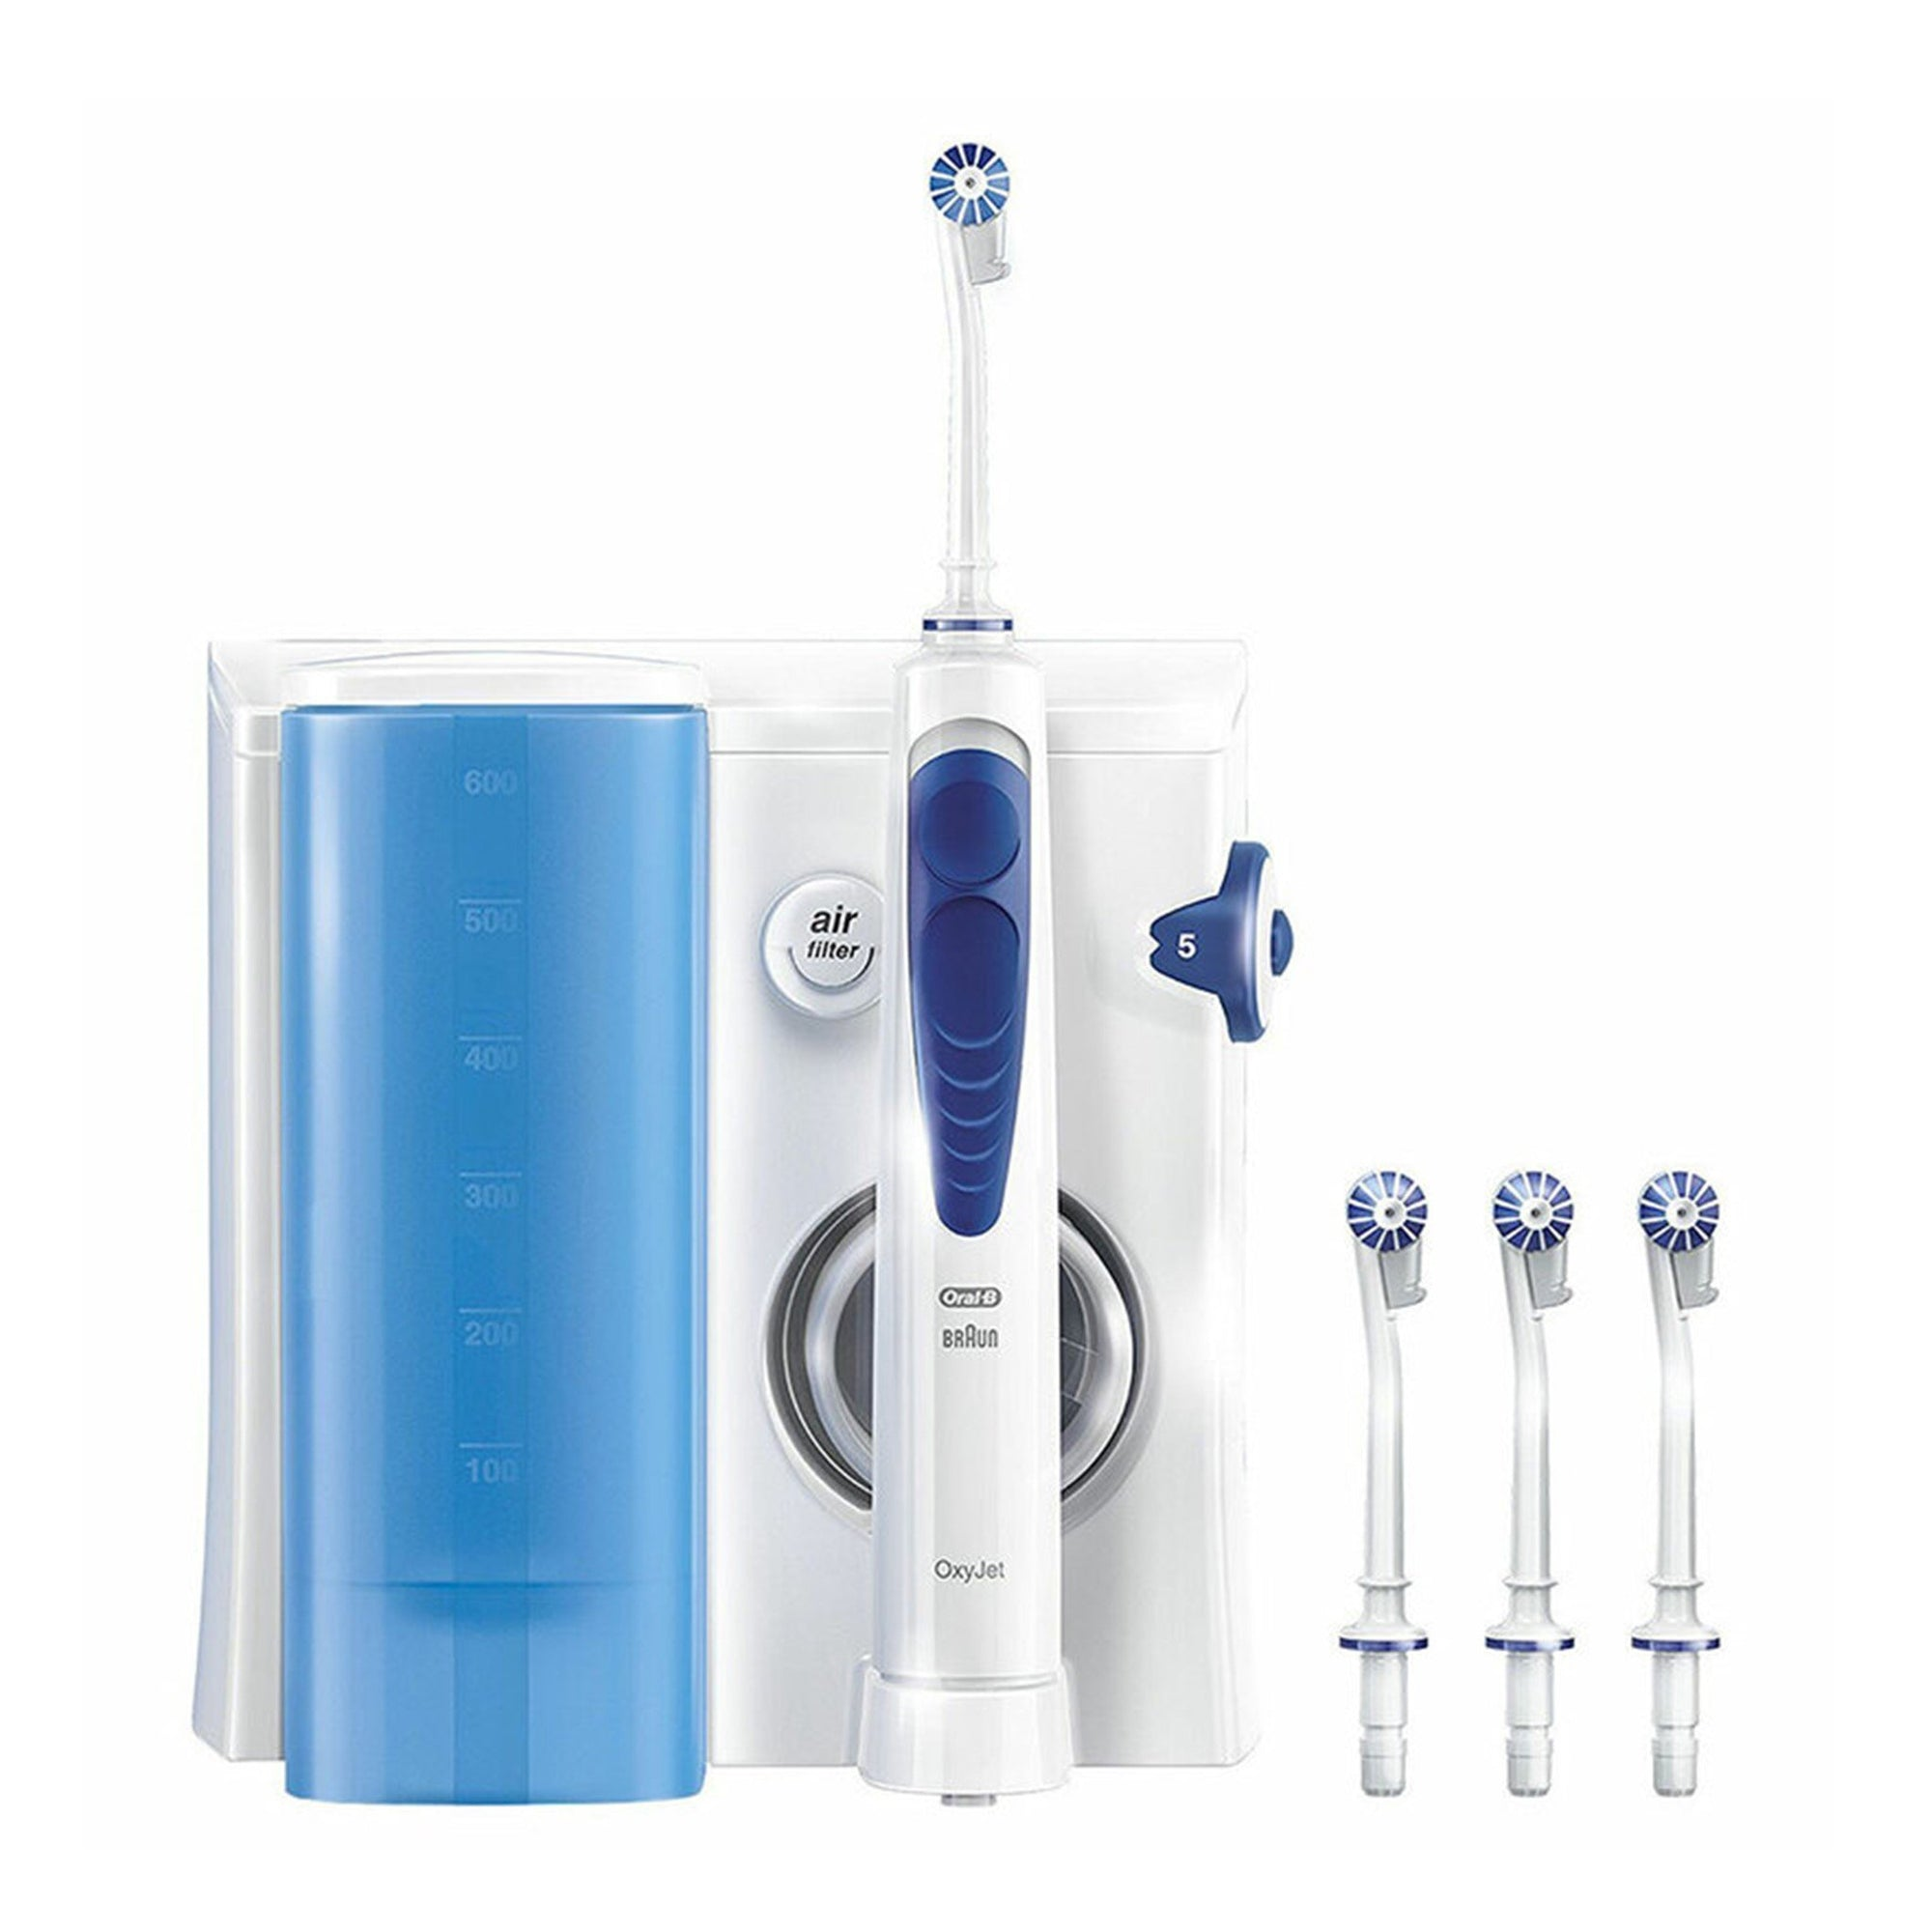 Oral B OxyJet Rechargeable Toothbrush